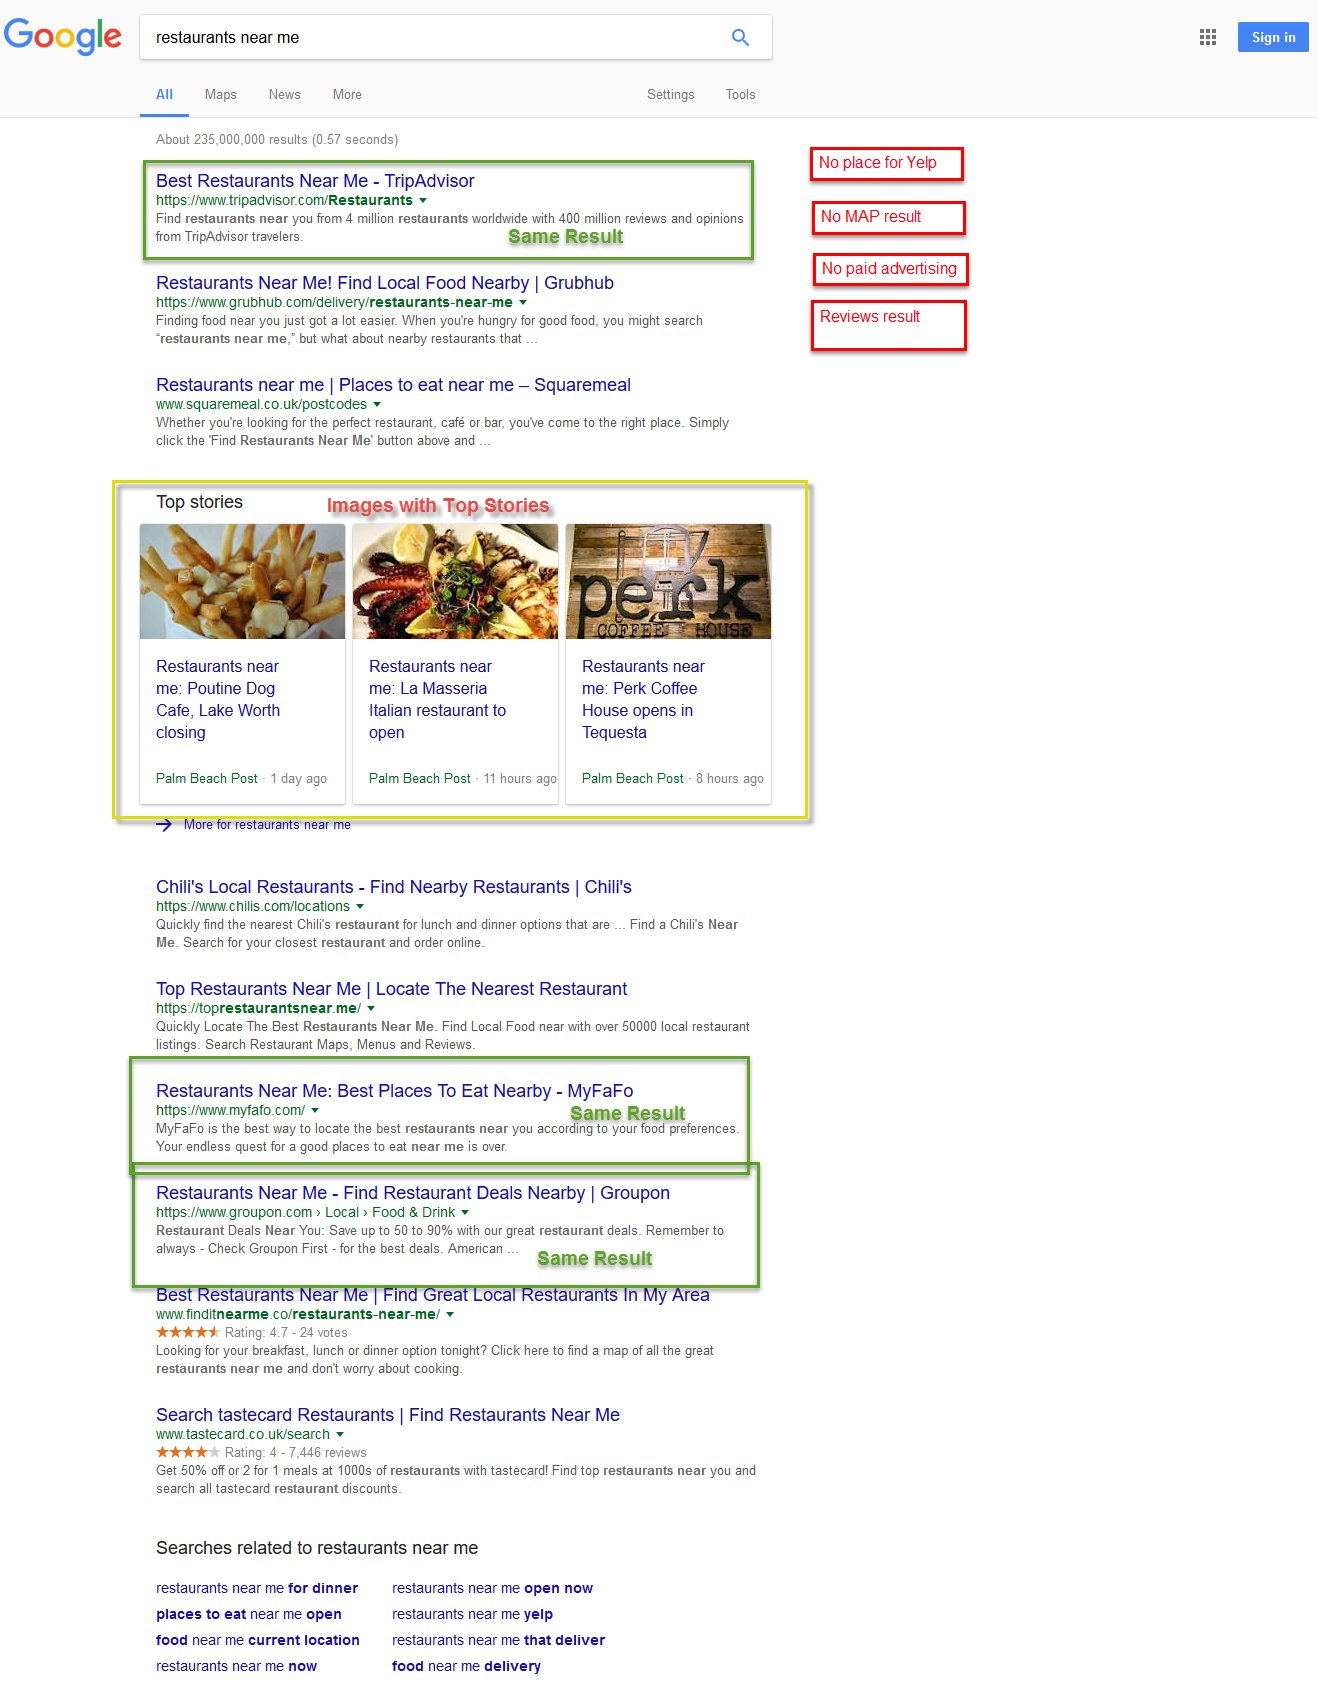 Vivek Patel On Twitter How Diffe Search Engine Google Bing Duckduckgo Displayed Results For The Same Local Terms Restaurants